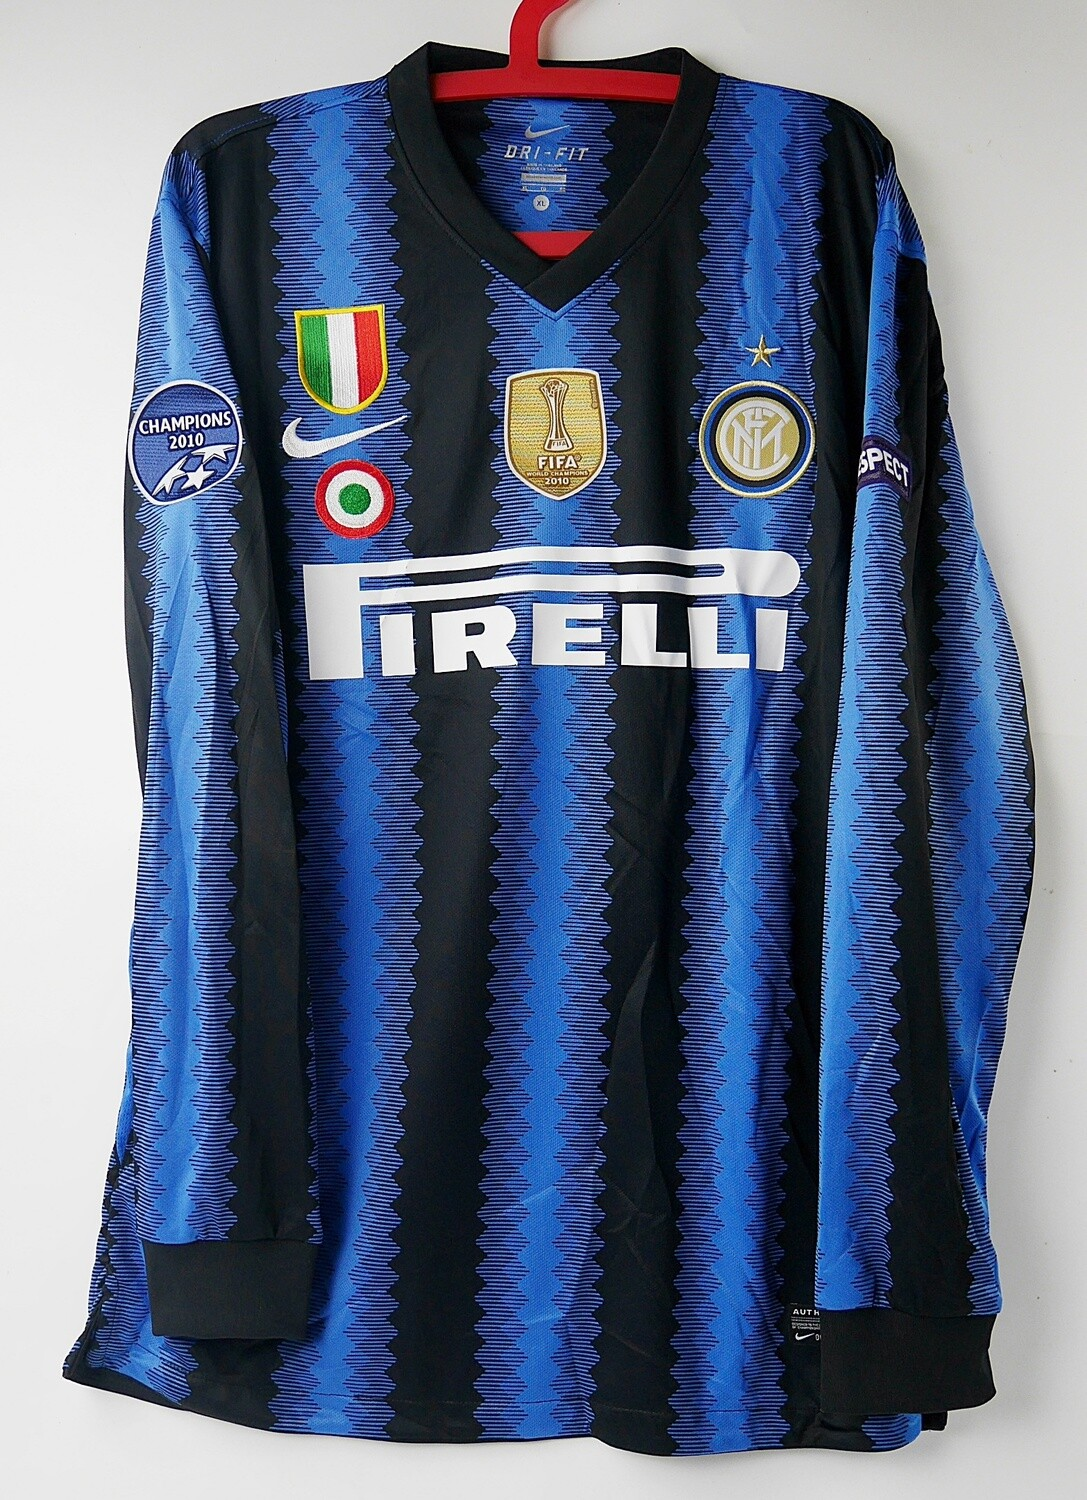 INTER MAGLIA CASA JERSEY HOME 2010 2011 MANICHE LUNGHE LONG SLEEVES